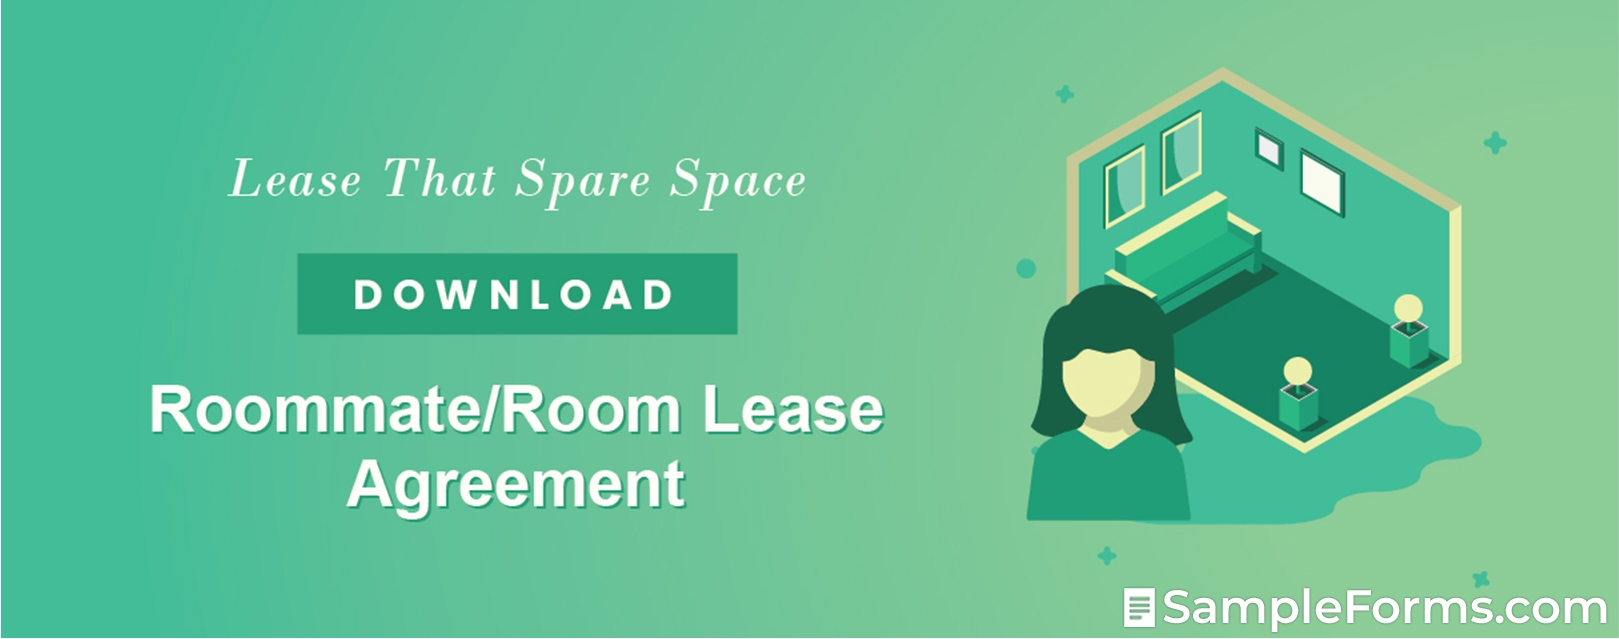 RoommateRoom Lease Agreement